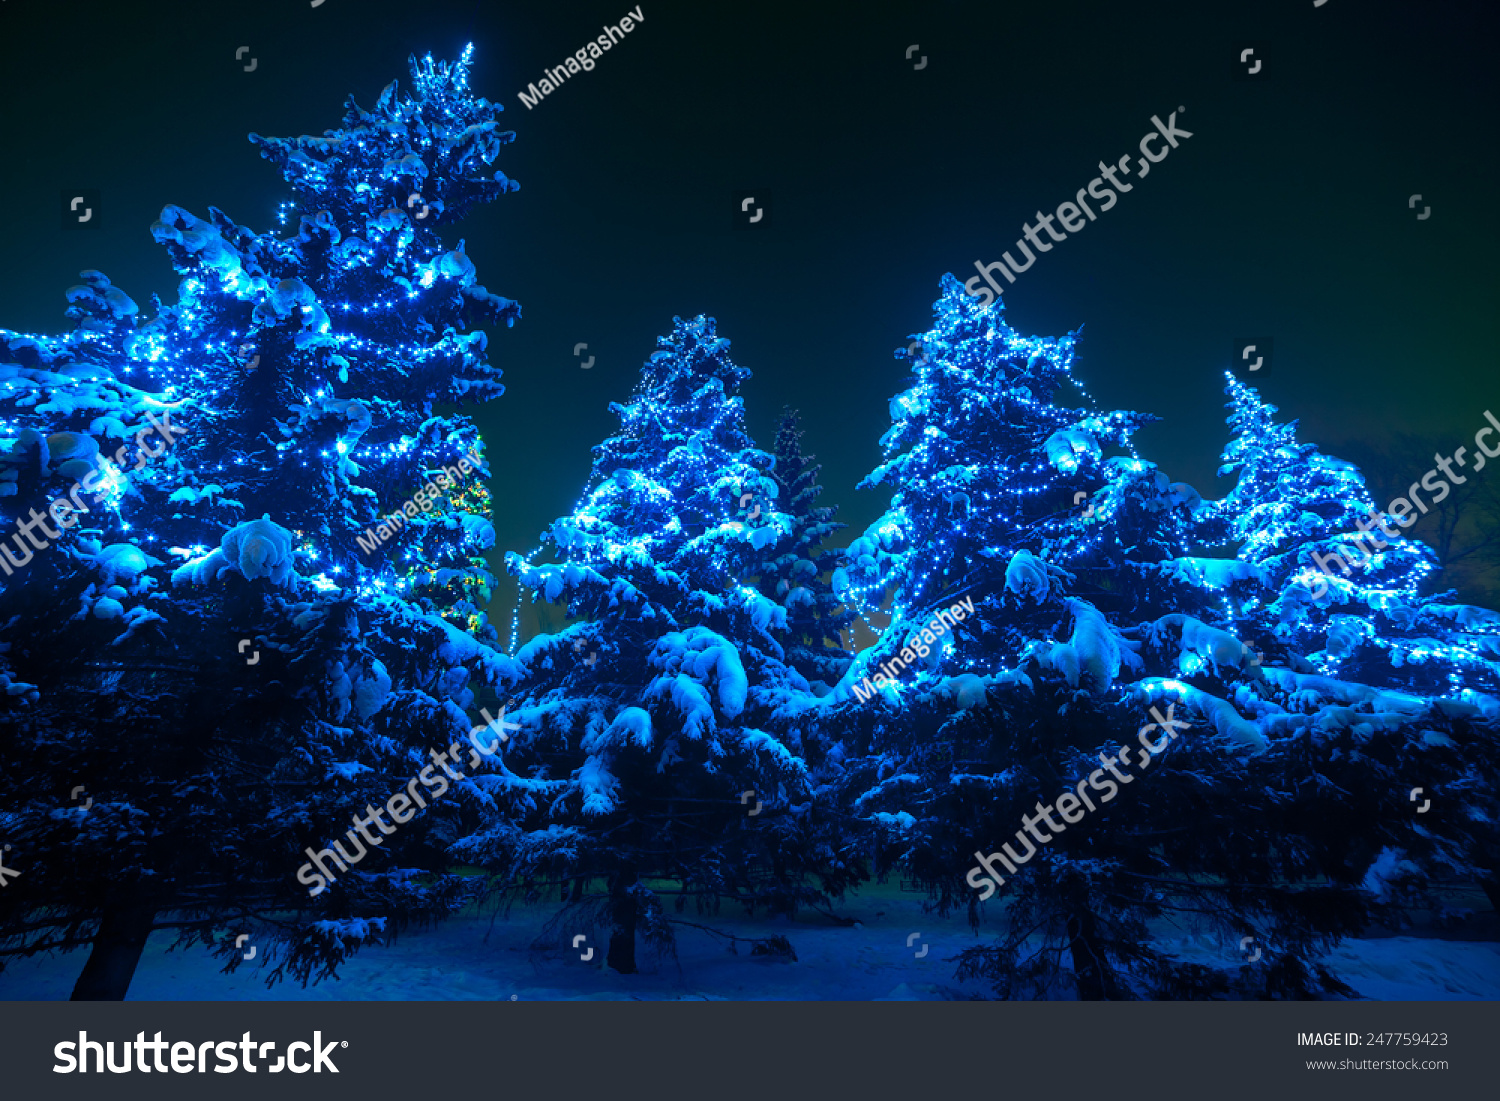 snow covered christmas tree lights in a winter forest by night huge fir trees with - Blue Christmas Tree Lights